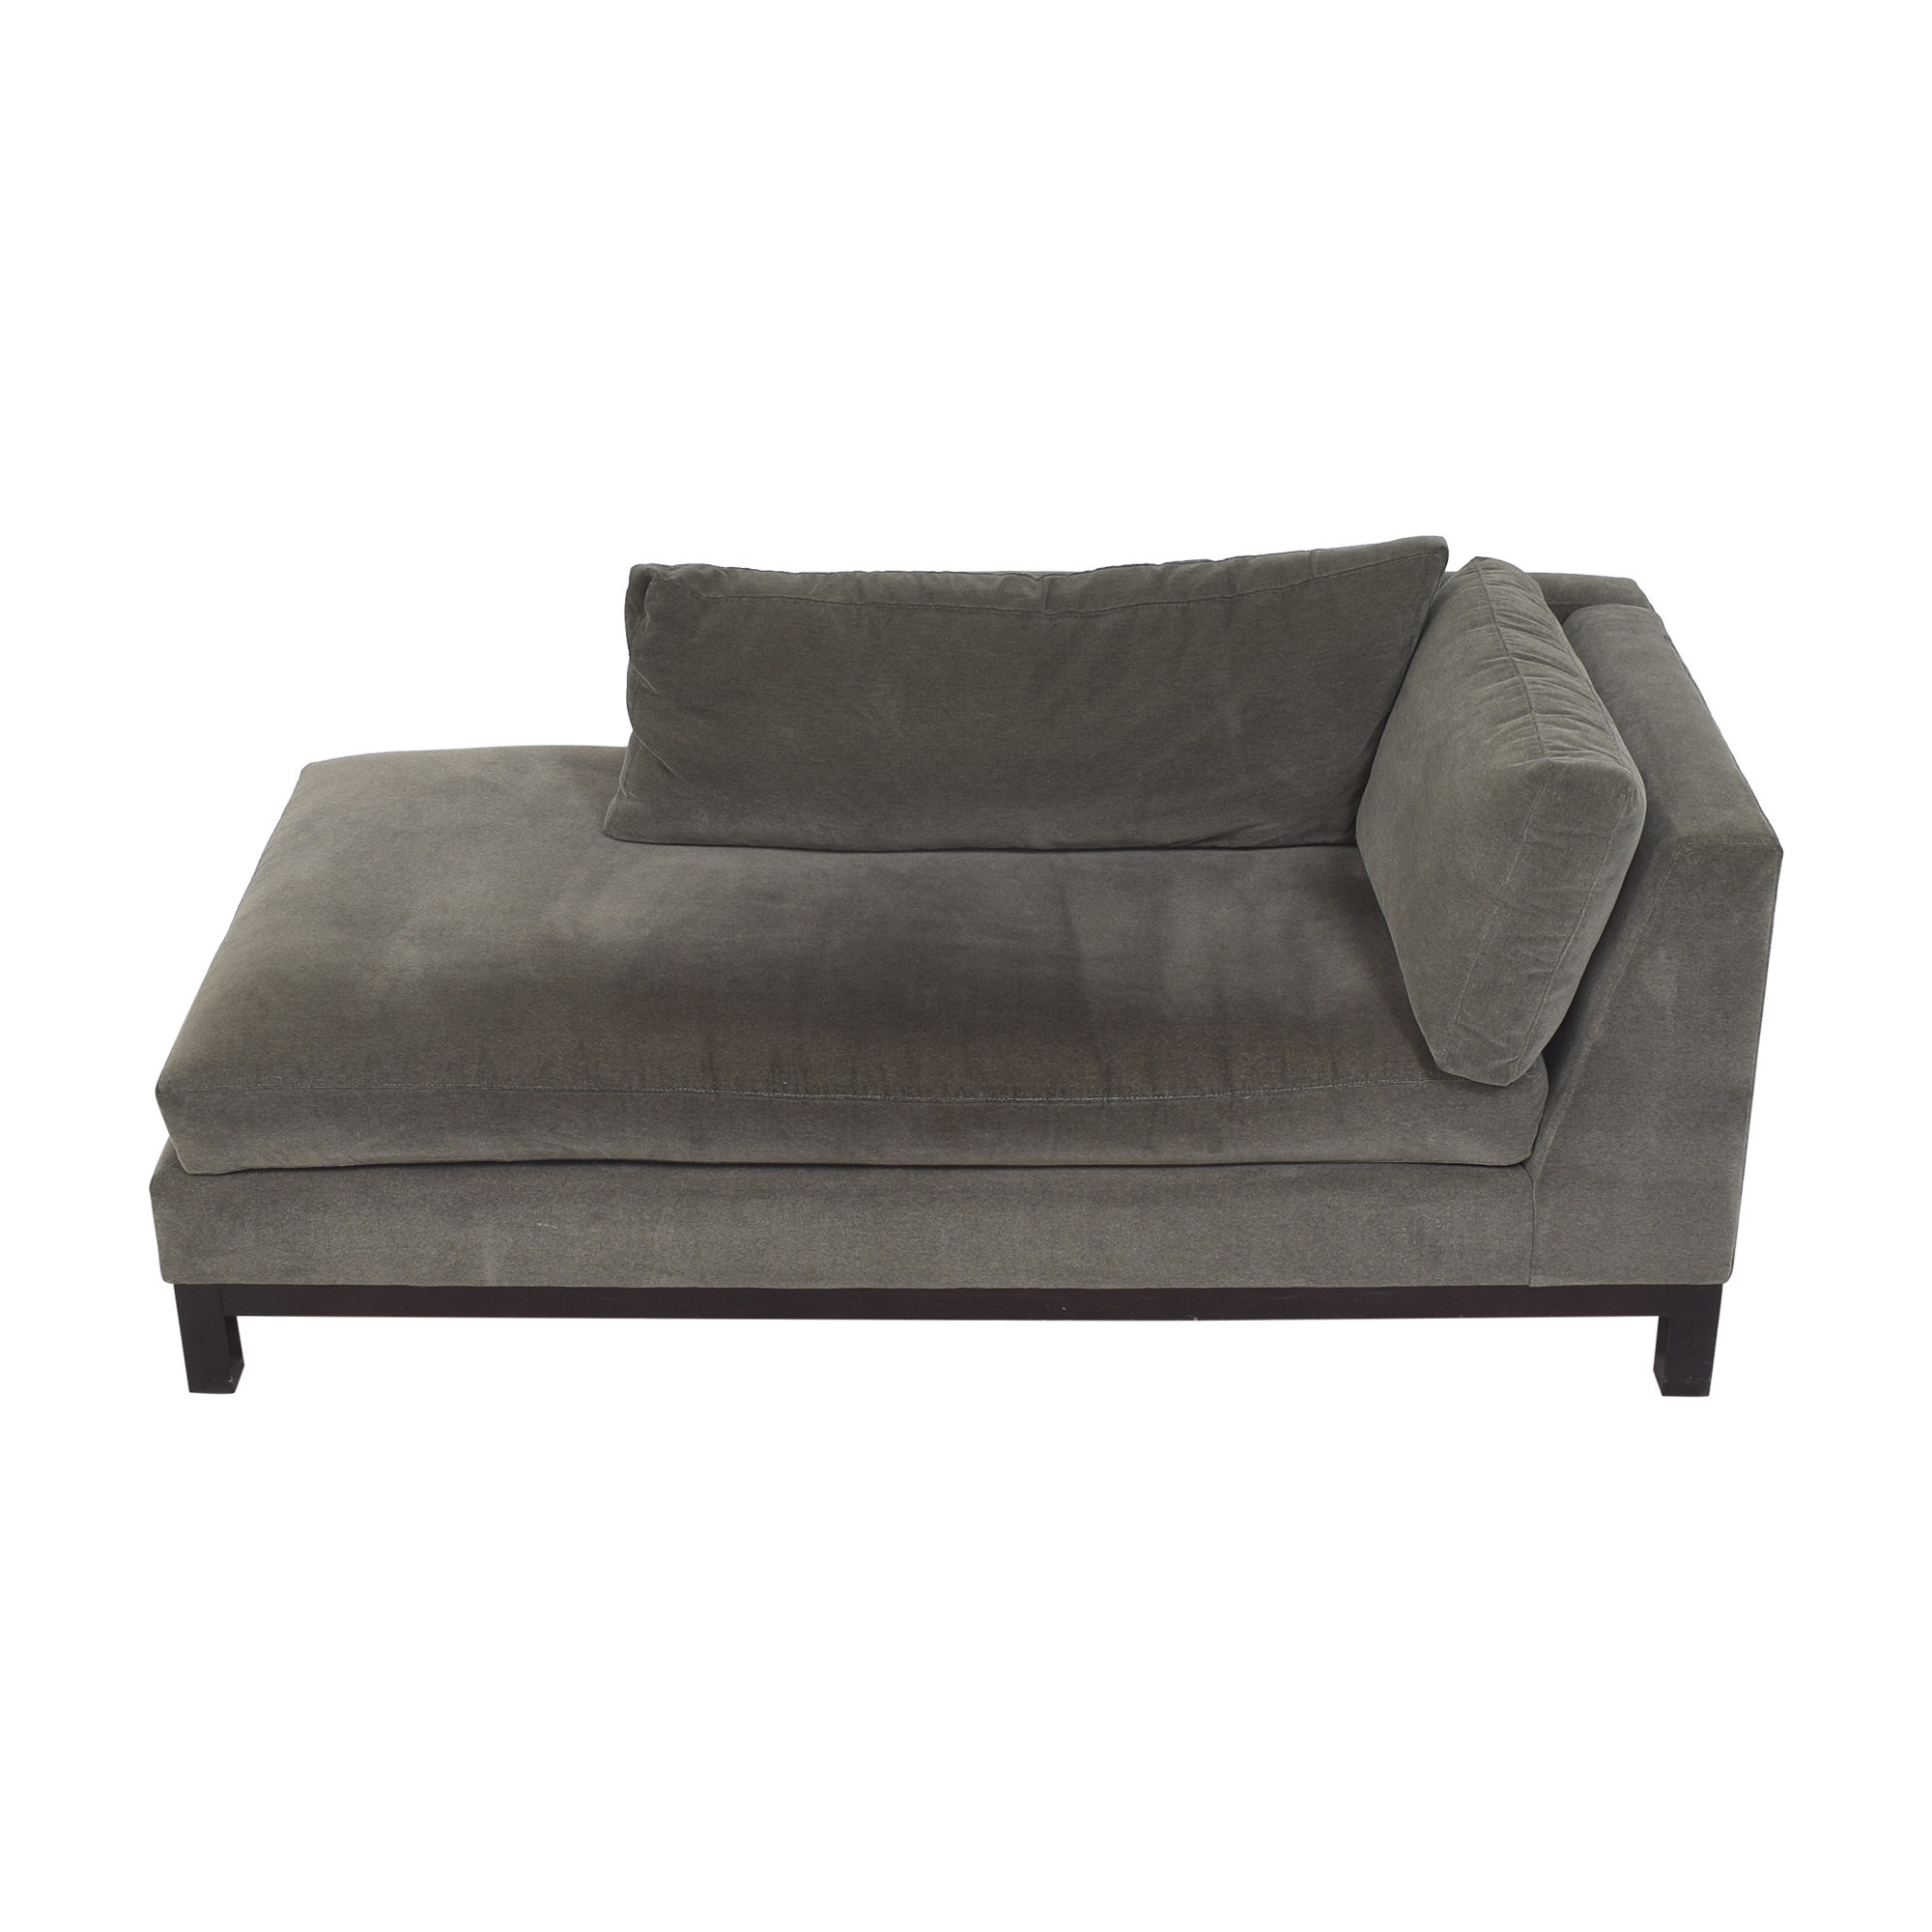 Crate & Barrel Crate & Barrel Chaise Lounge grey